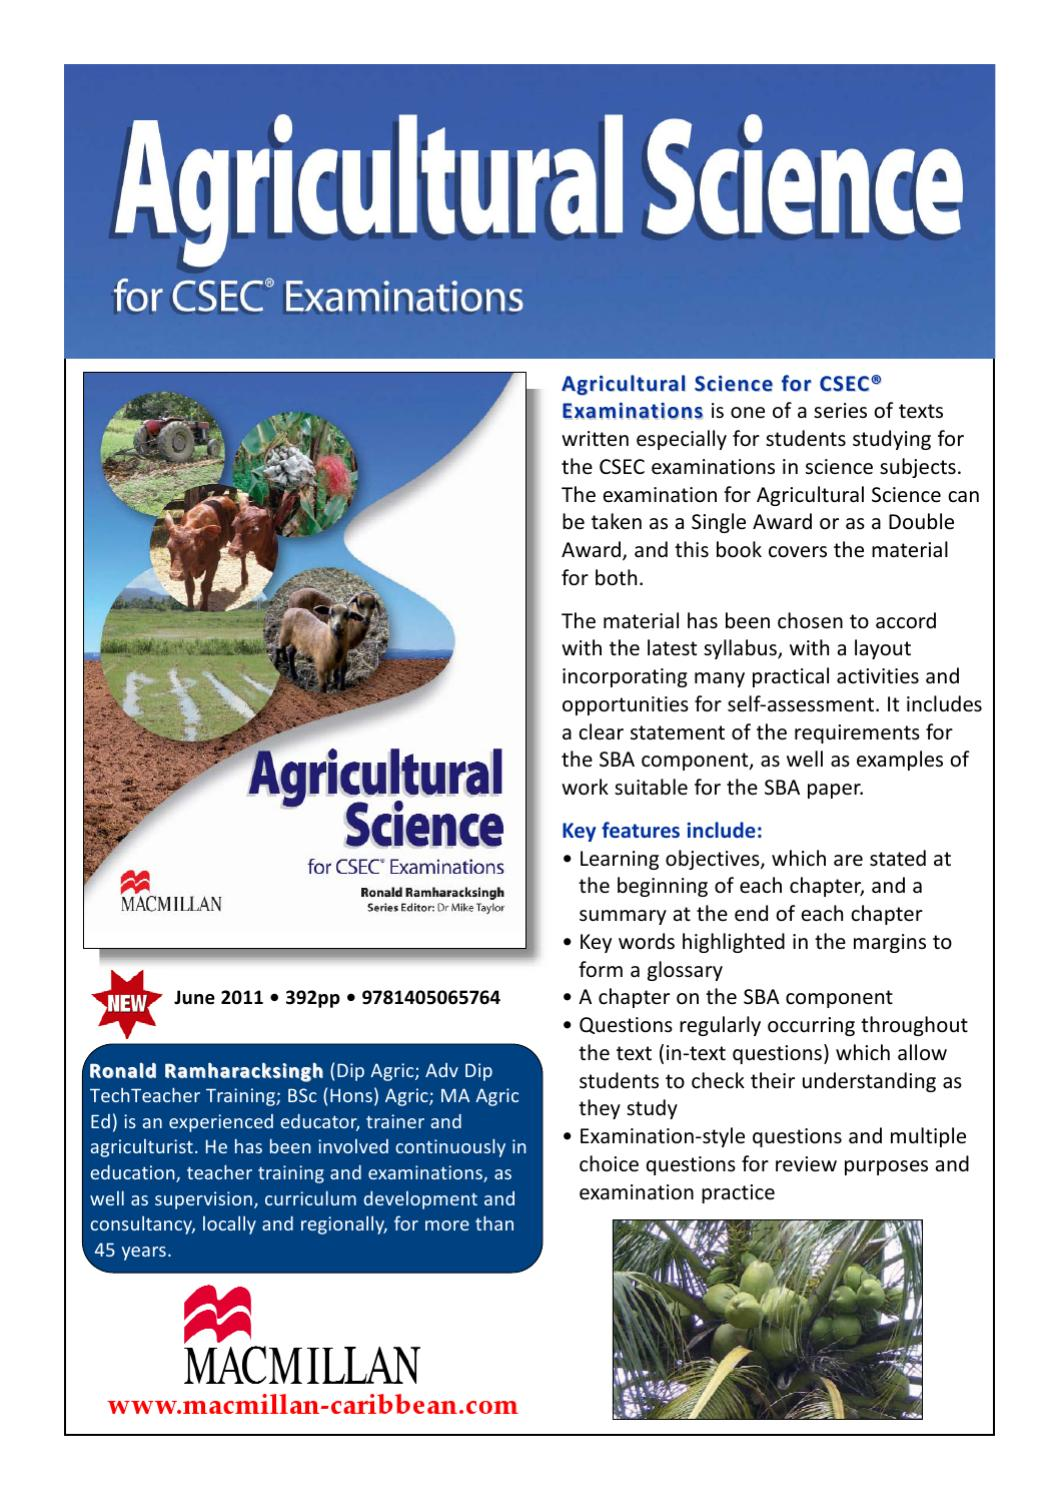 Online Certificates in Agricultural Science in India 2020